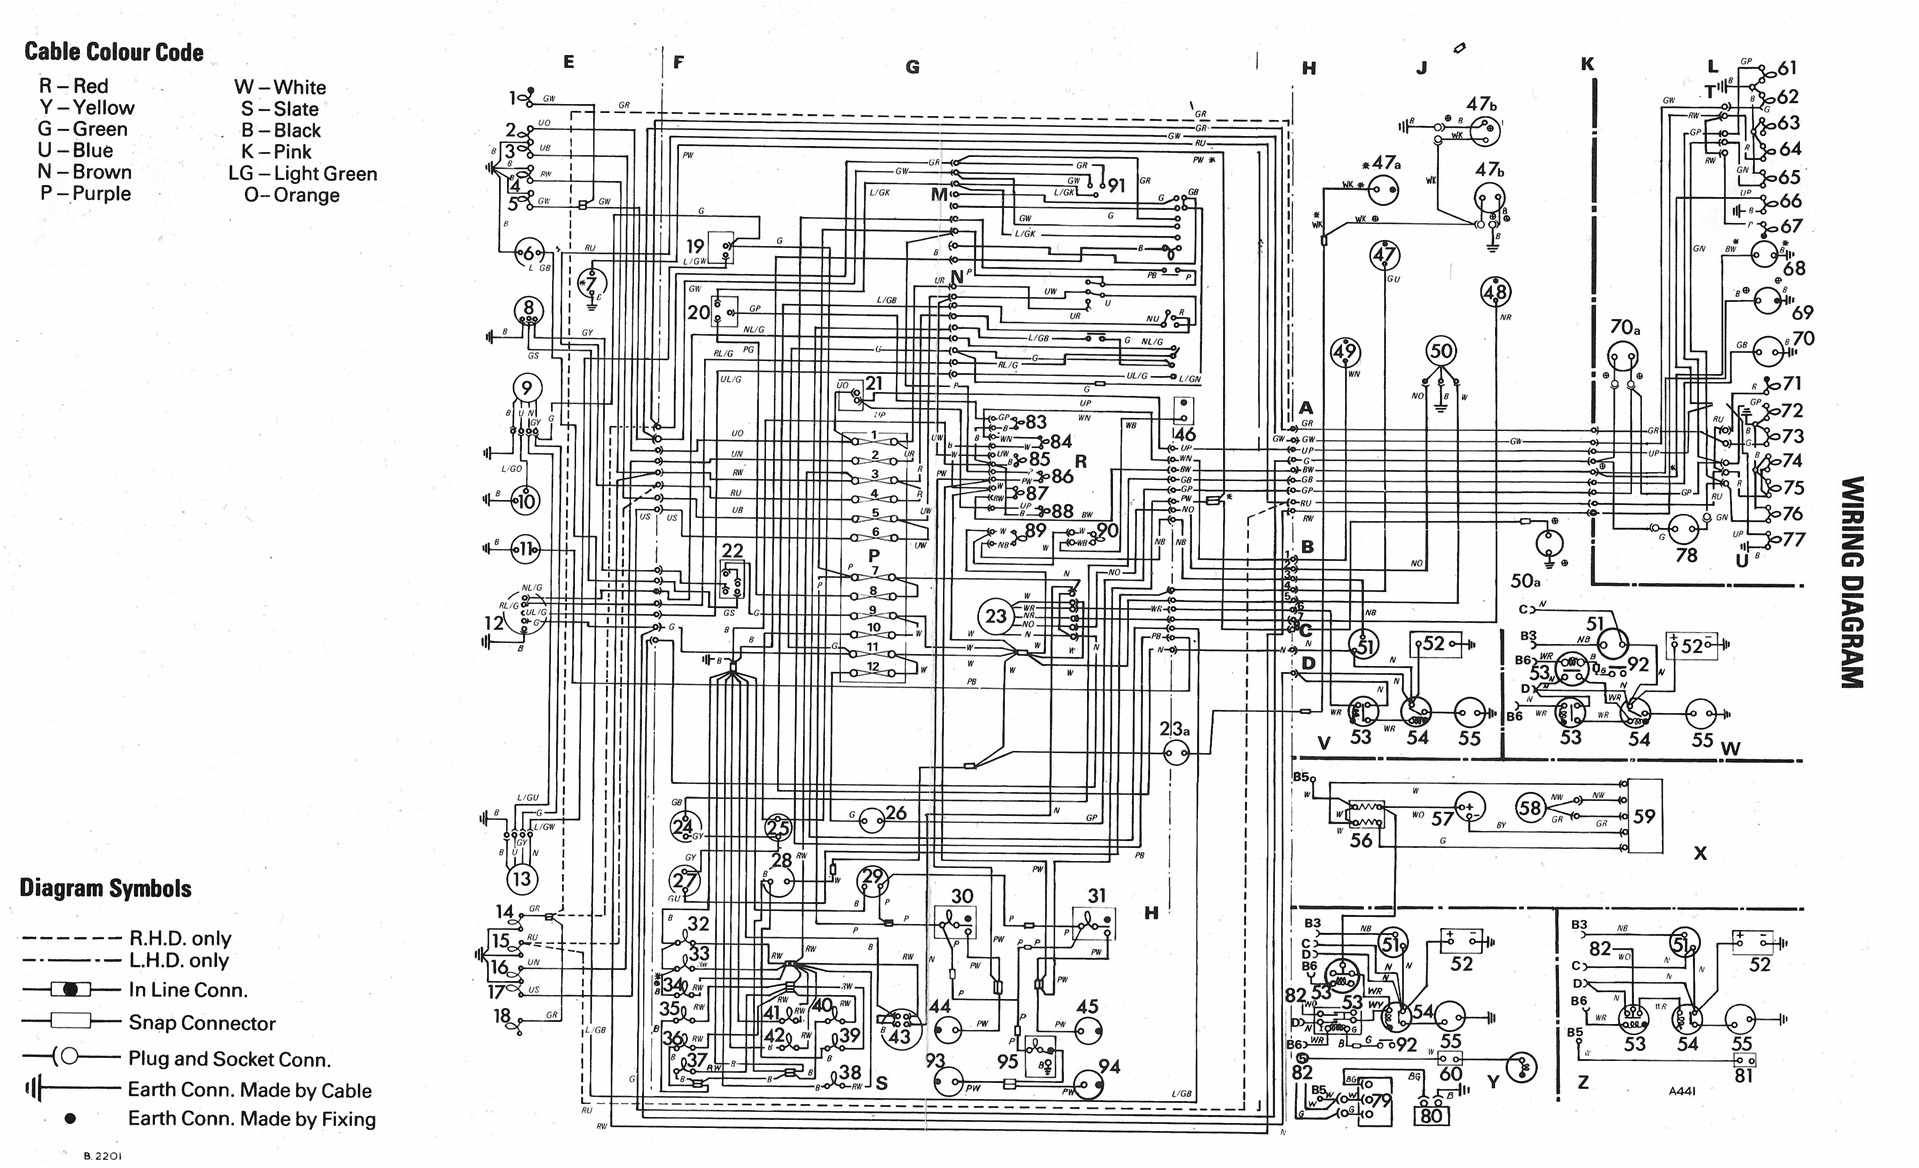 electrical wiring diagram of volkswagen golf mk1 projekt att electrical wiring diagram of volkswagen golf mk1